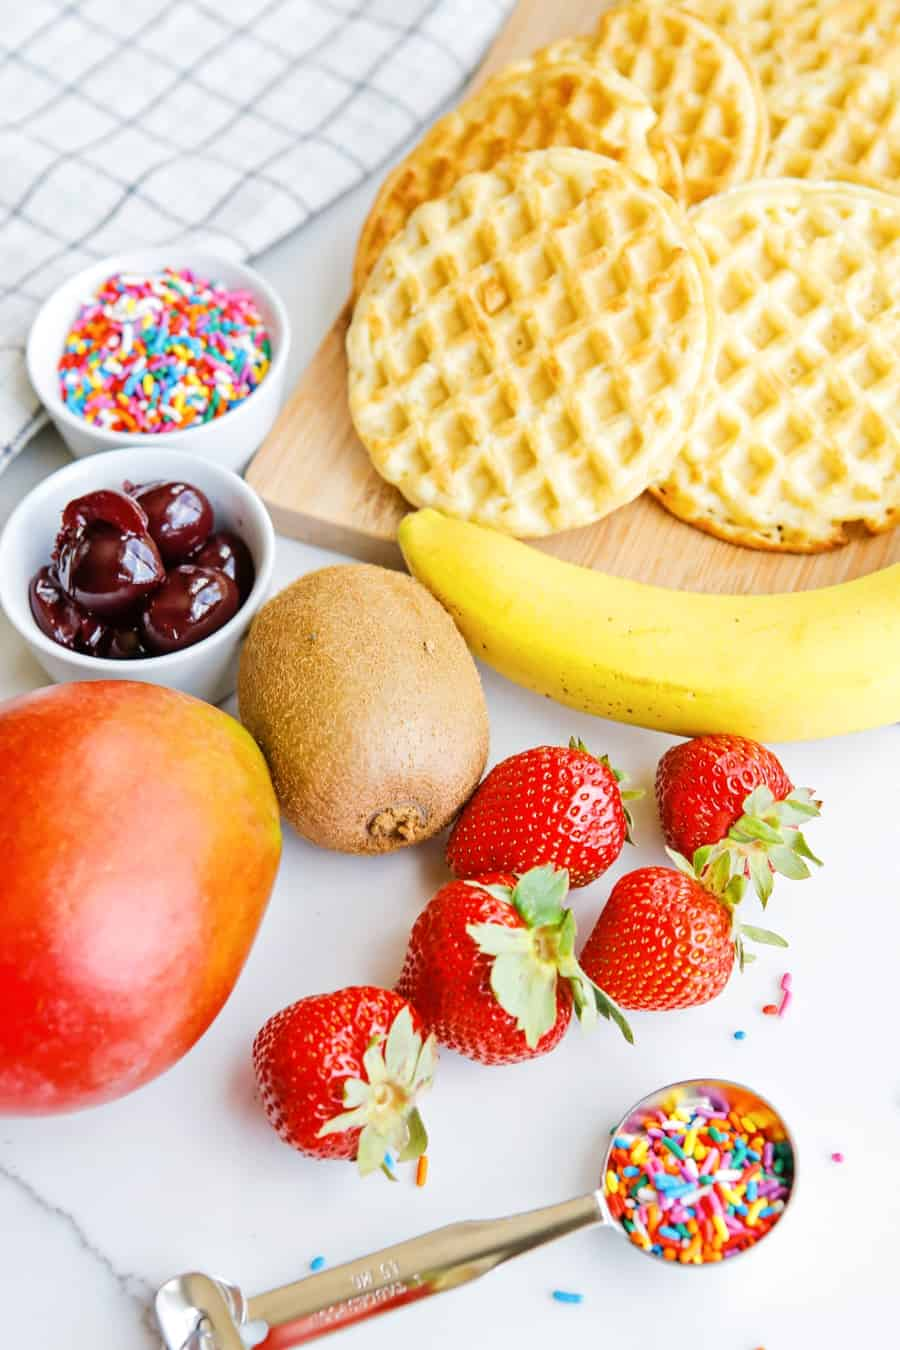 fresh fruit, sprinkles and waffle ingredients to make ice cream cone waffles